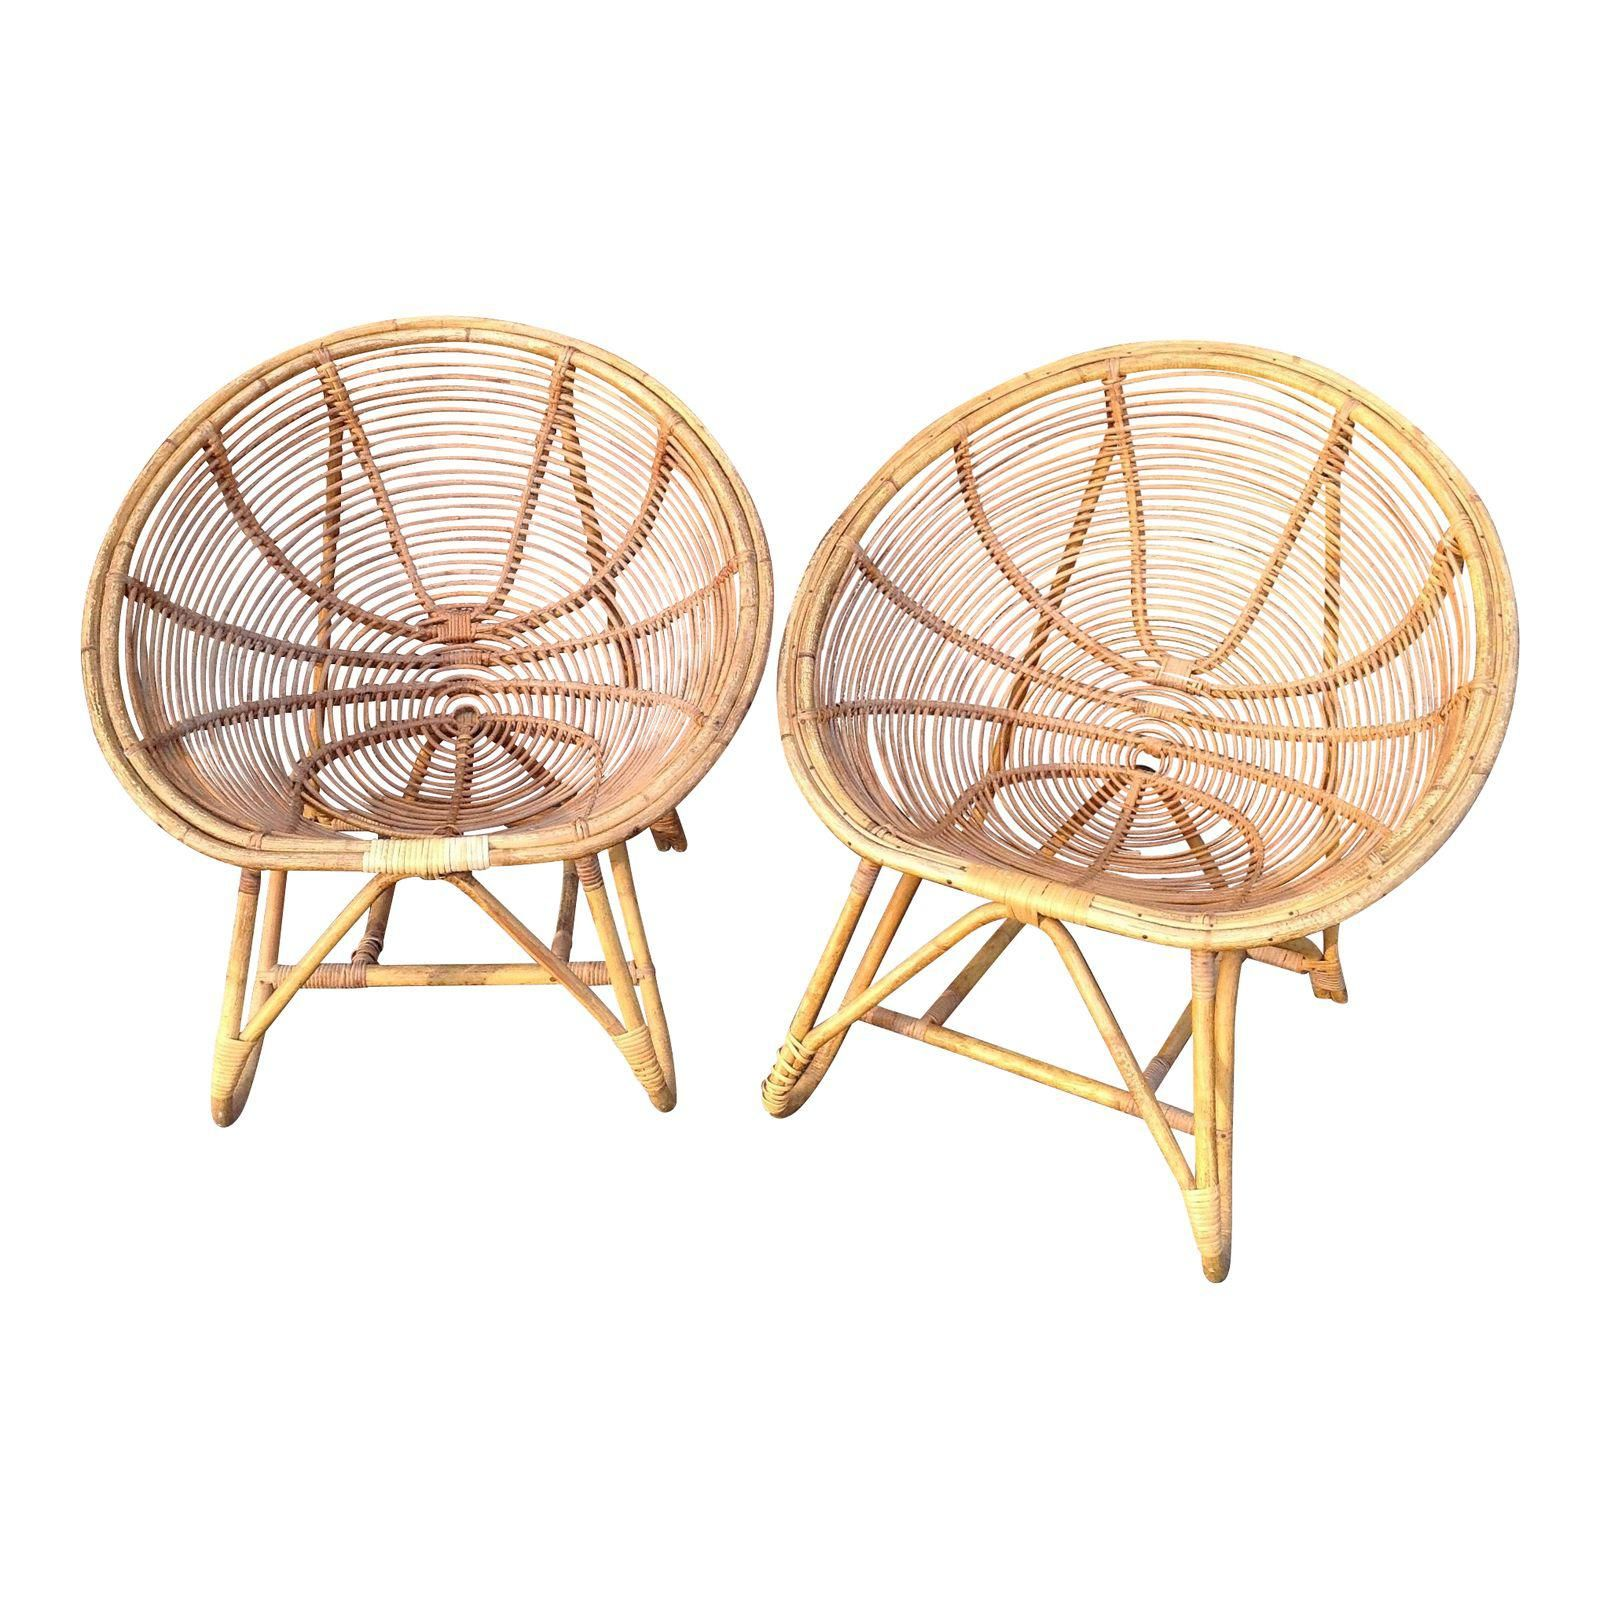 Image of antique bamboo and rattan egg chairs pair